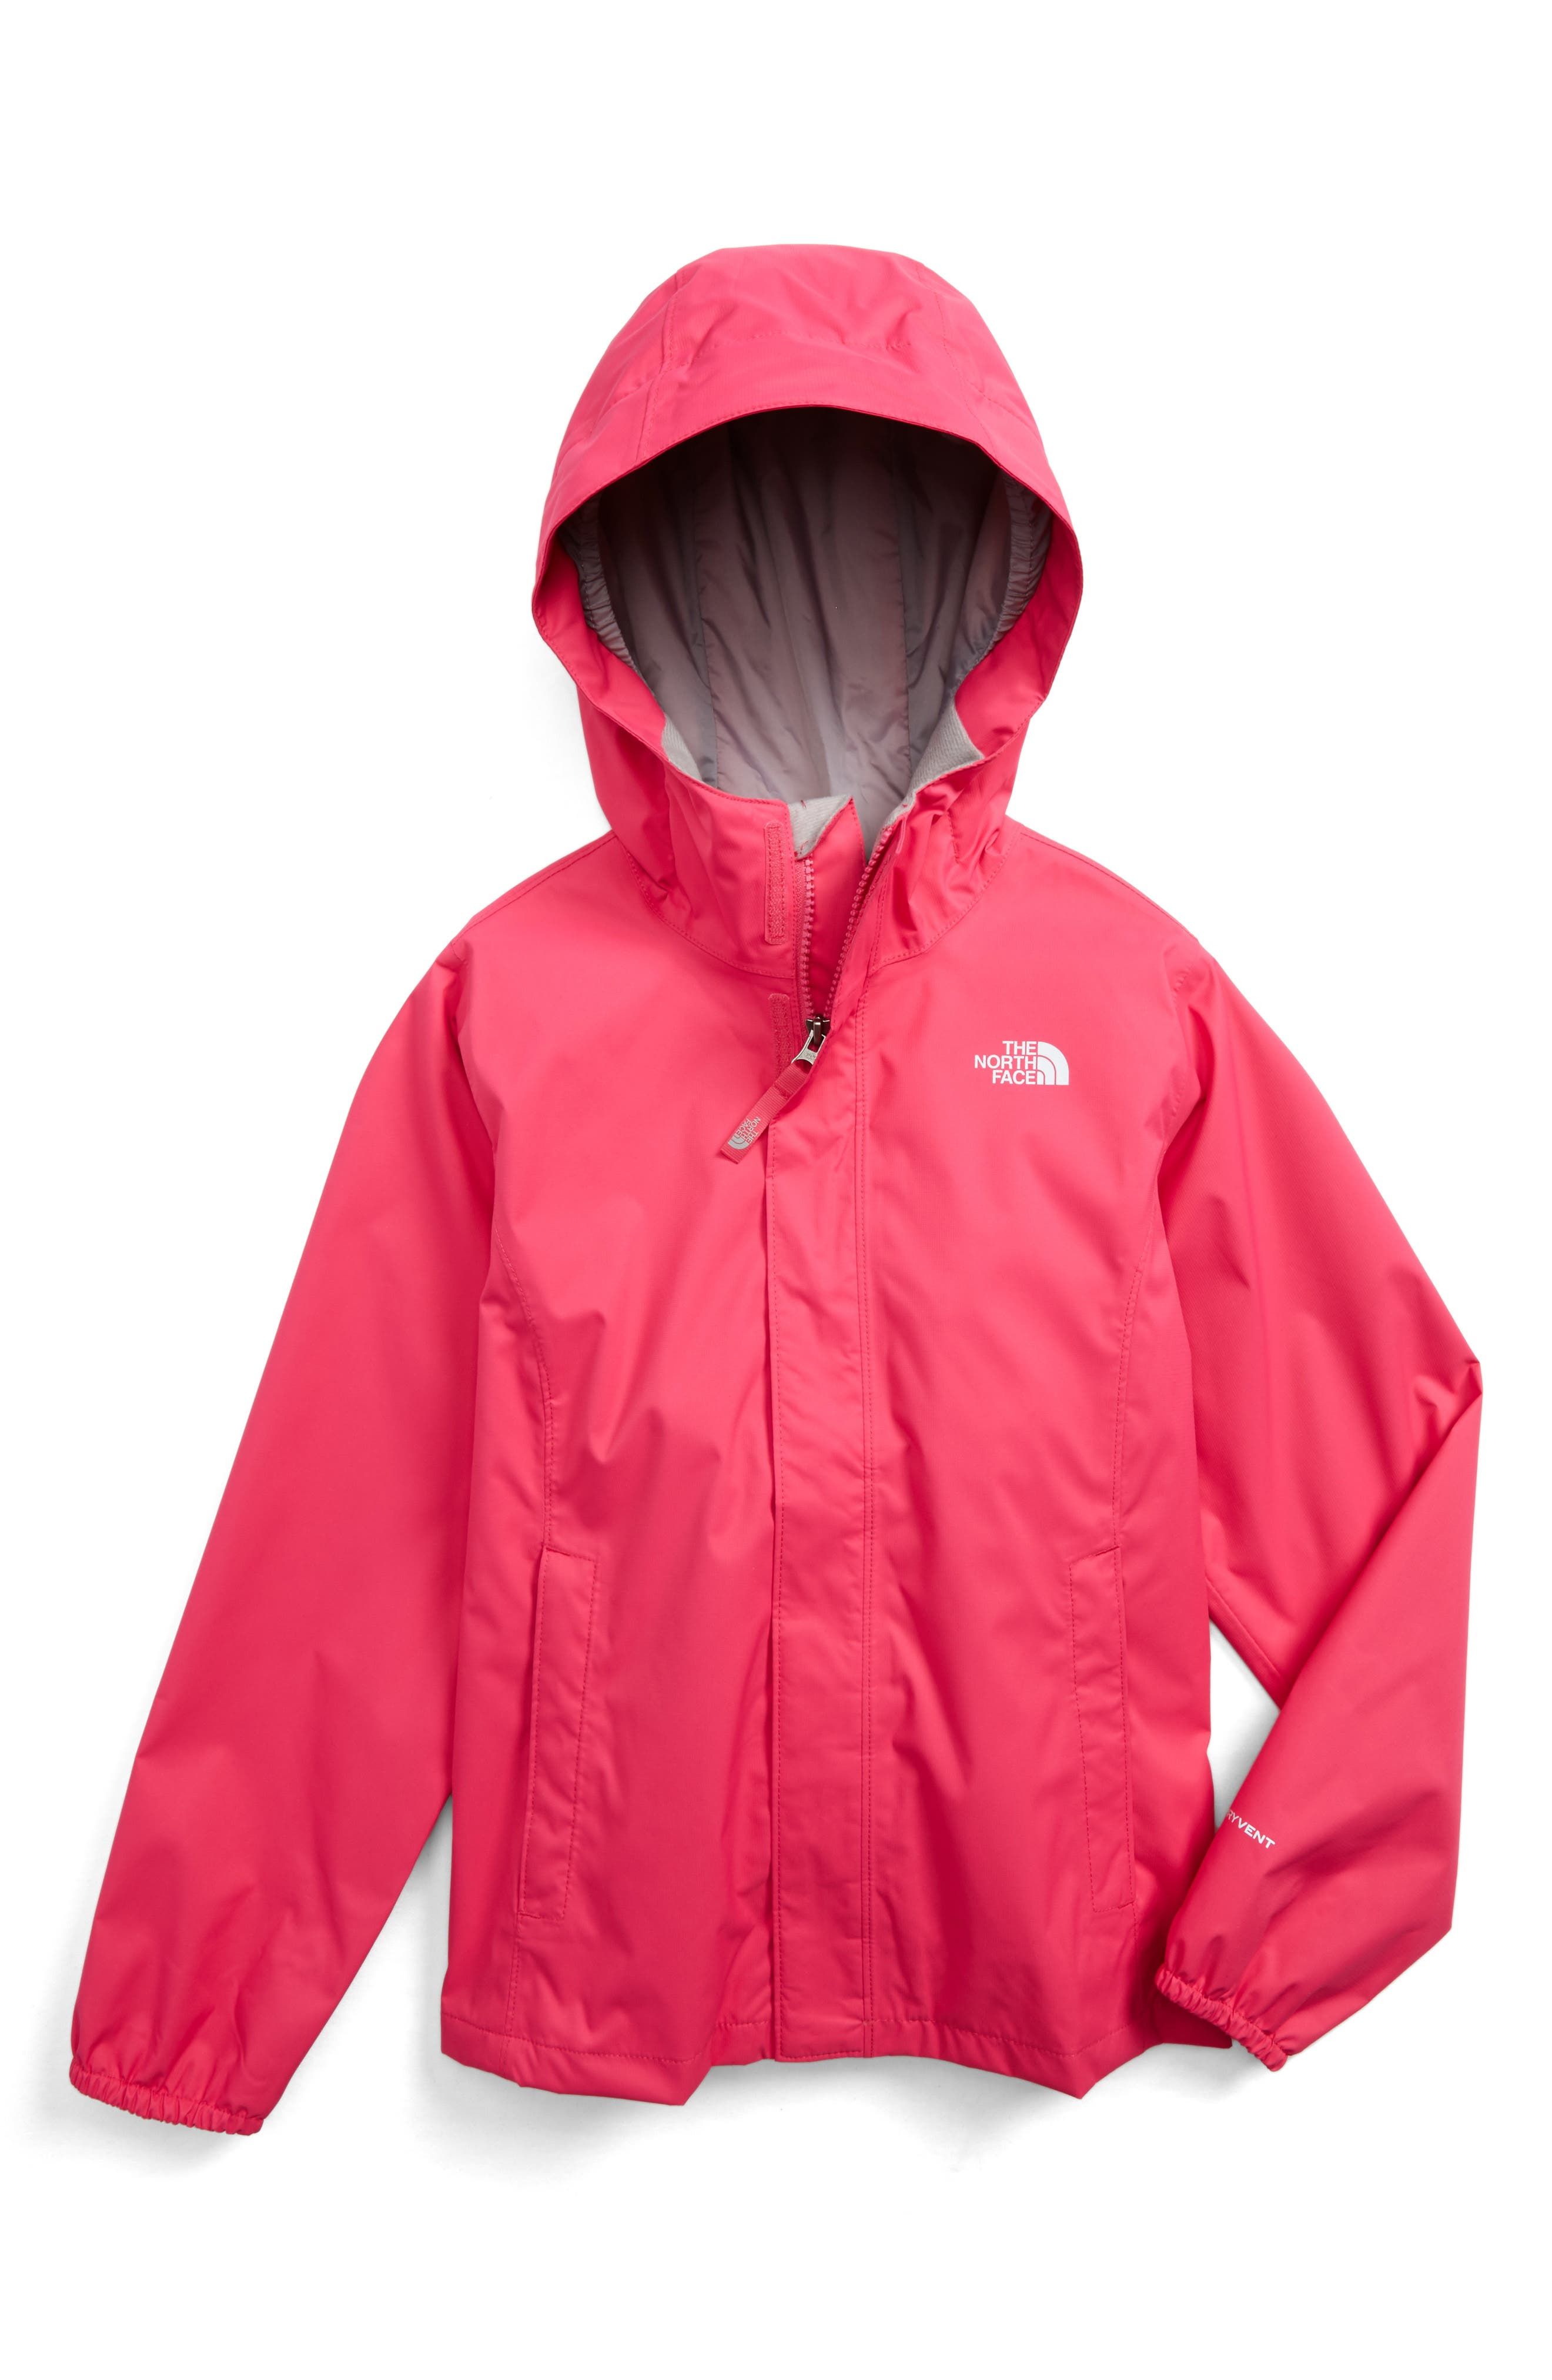 Alternate Image 1 Selected - The North Face Resolve Reflective Waterproof Hooded Jacket (Little Girls & Big Girls)